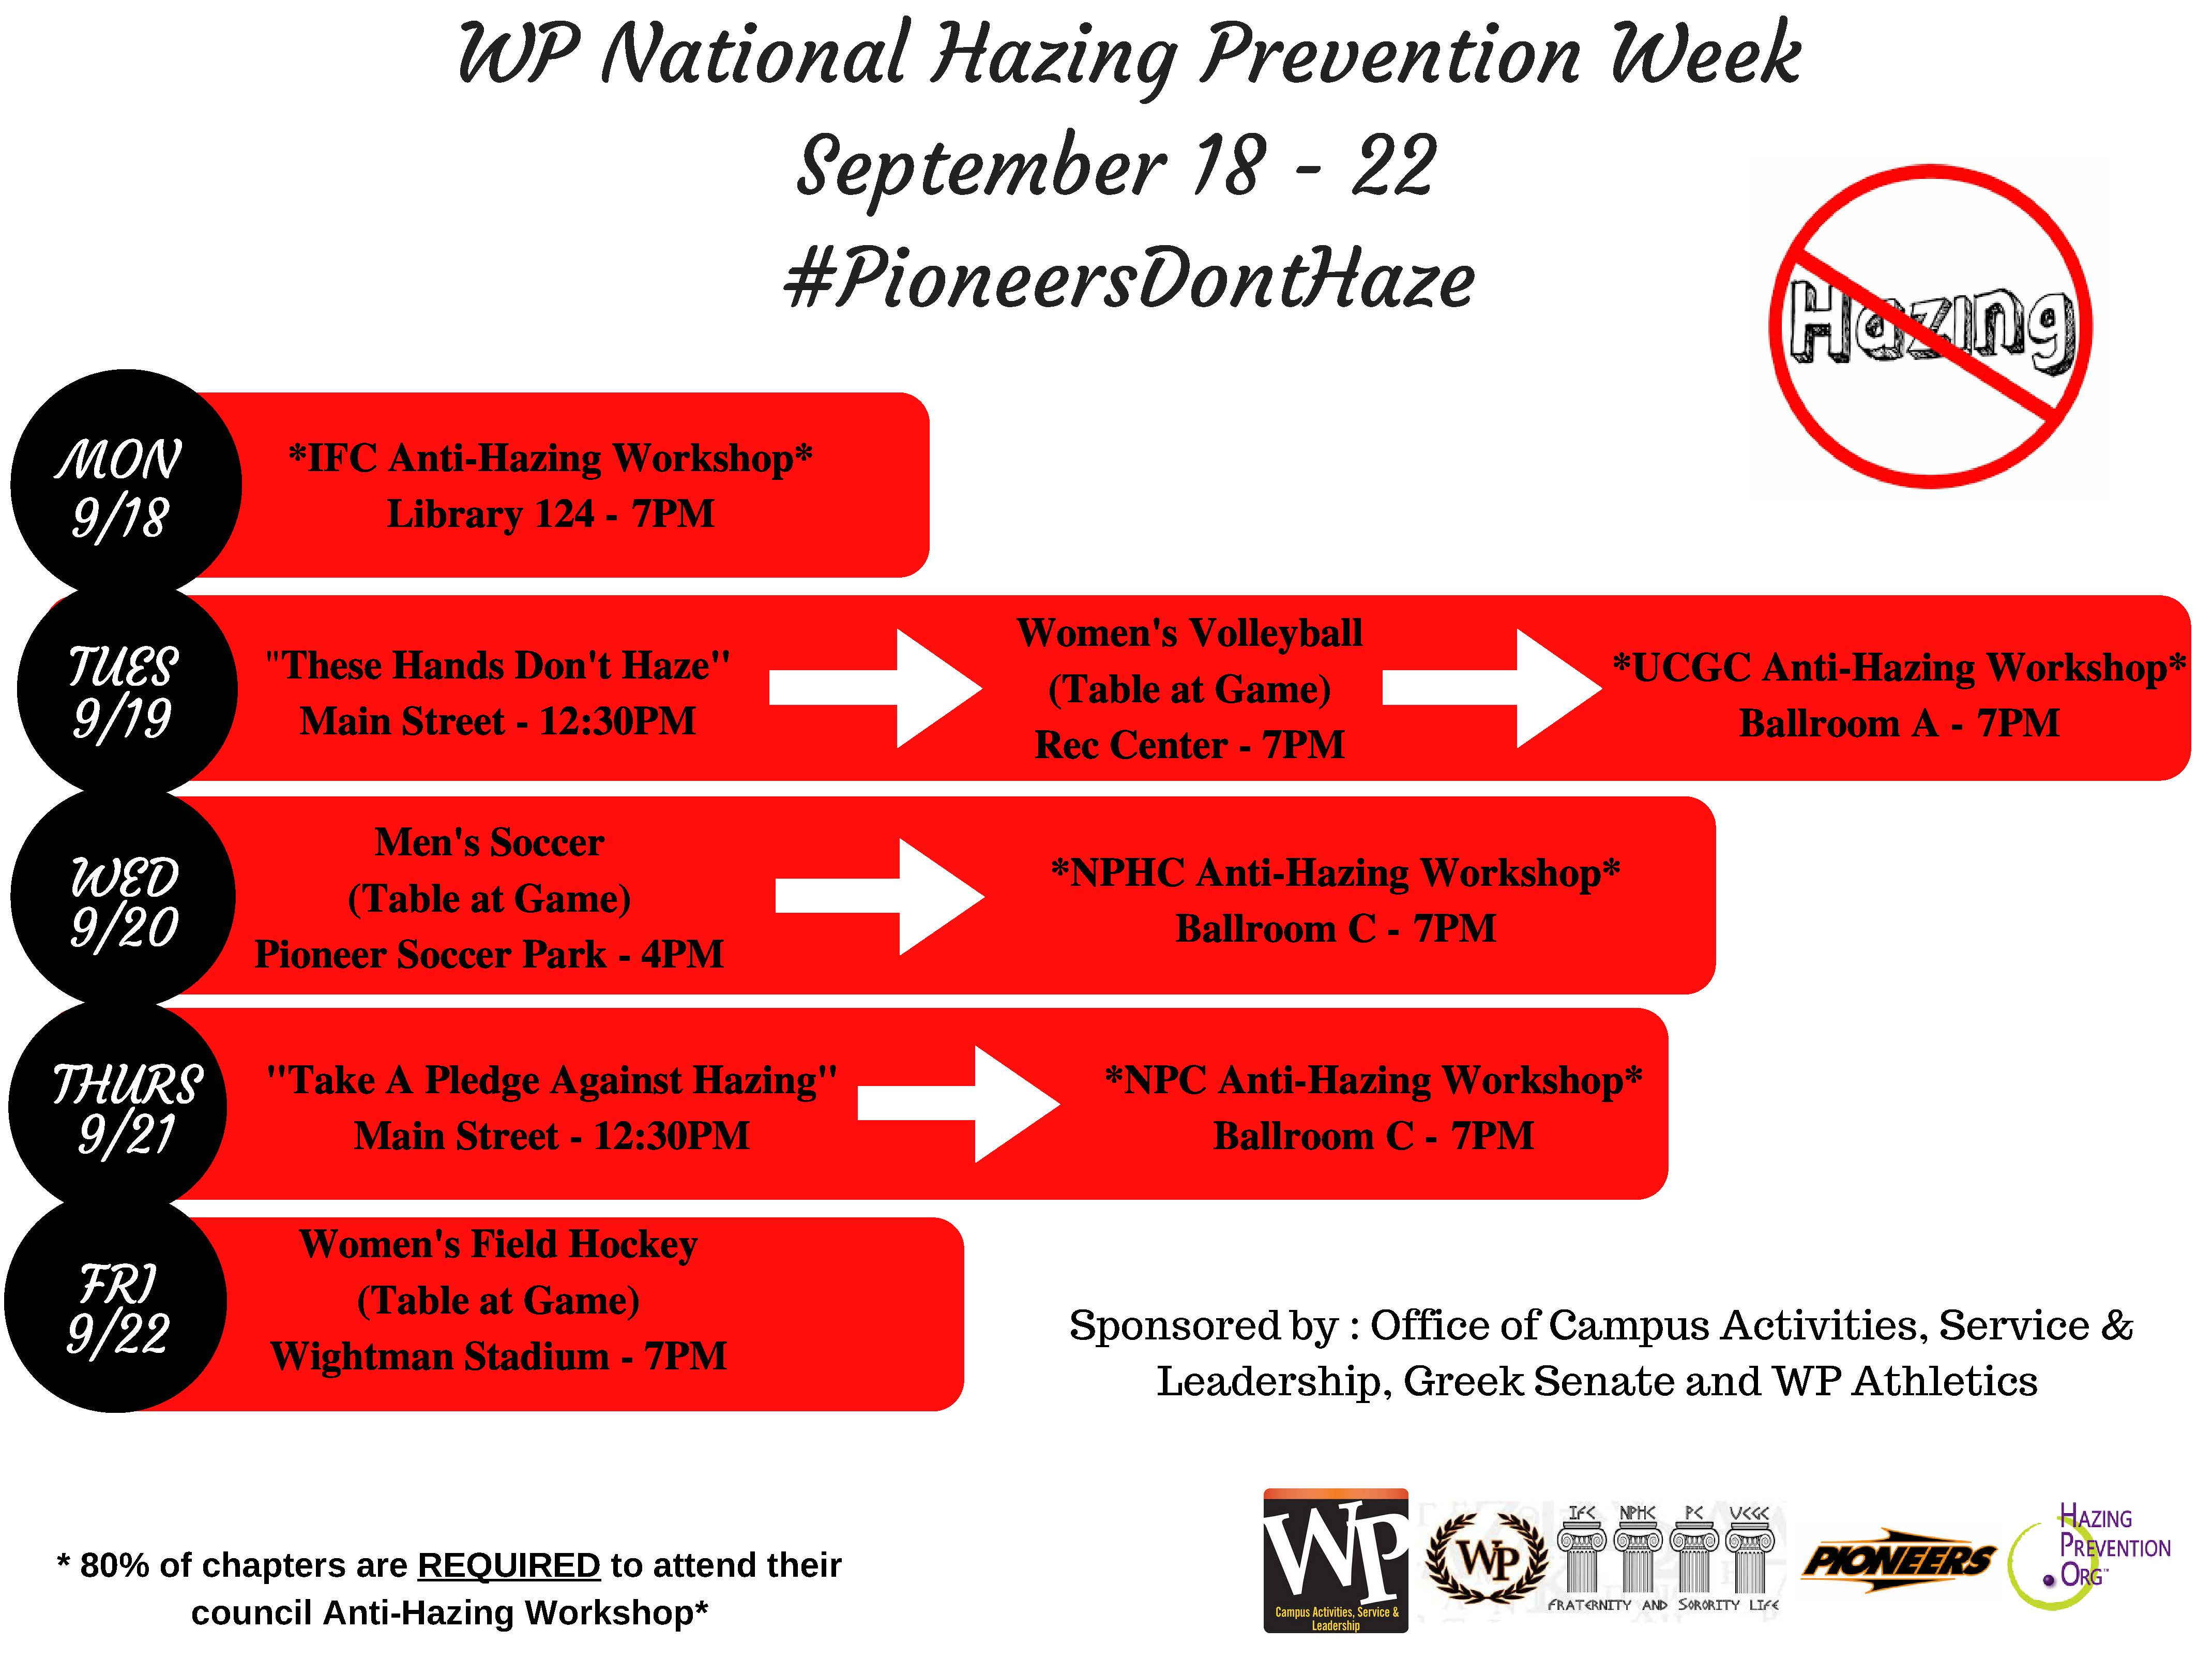 National Hazing Prevention Week 2017 - 2